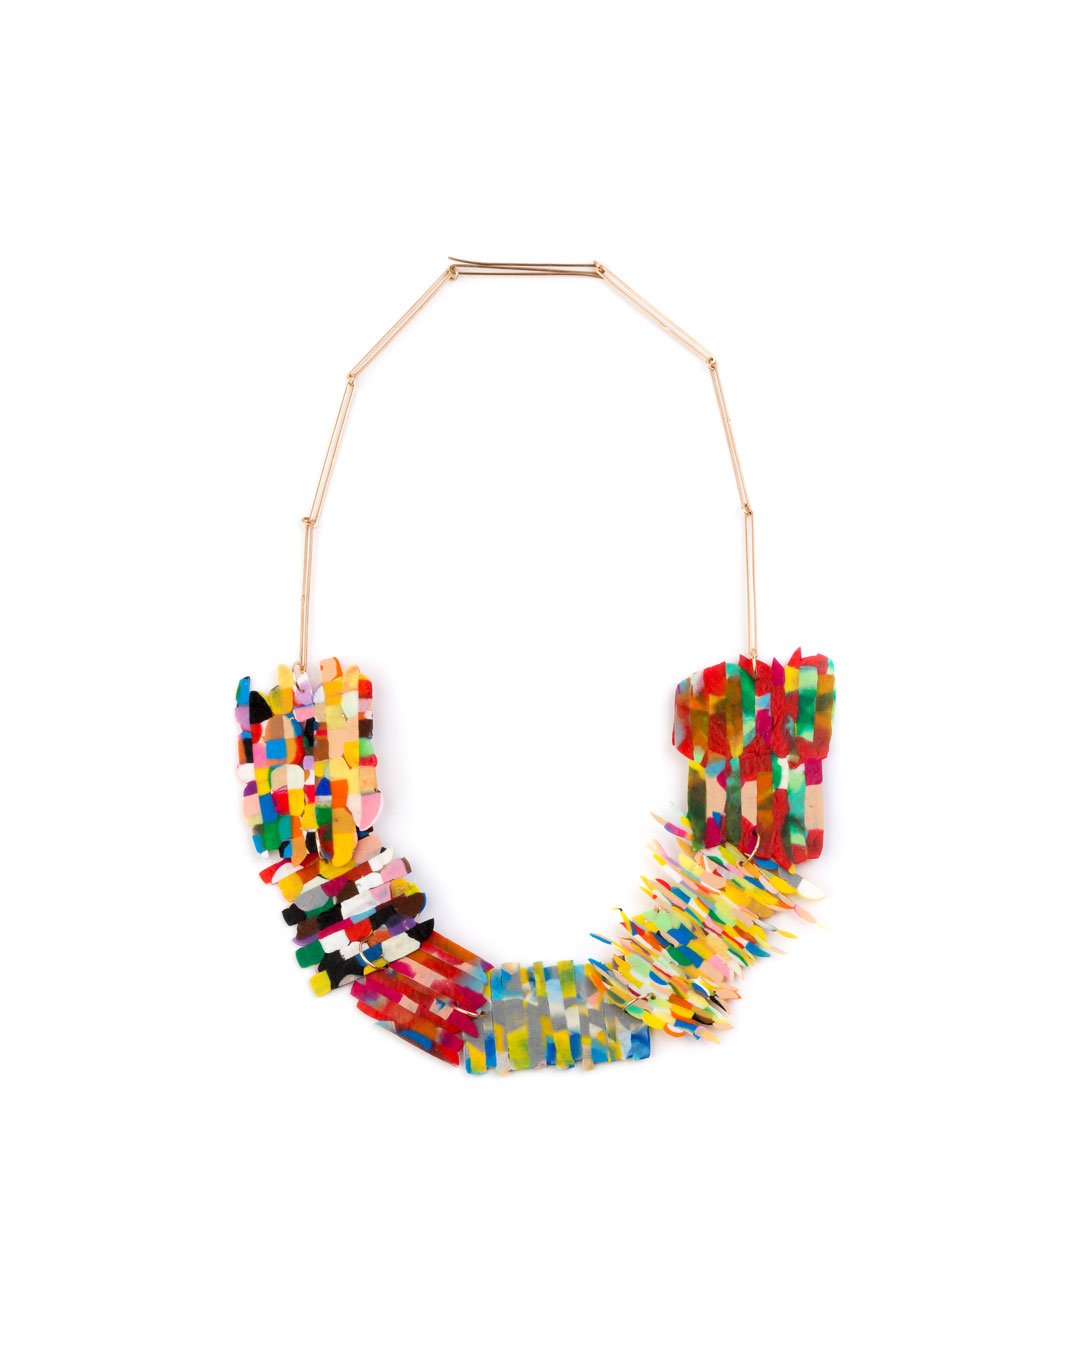 Karola Torkos, Patches, 2020, necklace; recycled plastic, 14ct rose gold, rose gold-plated copper, L 670 mm, €560